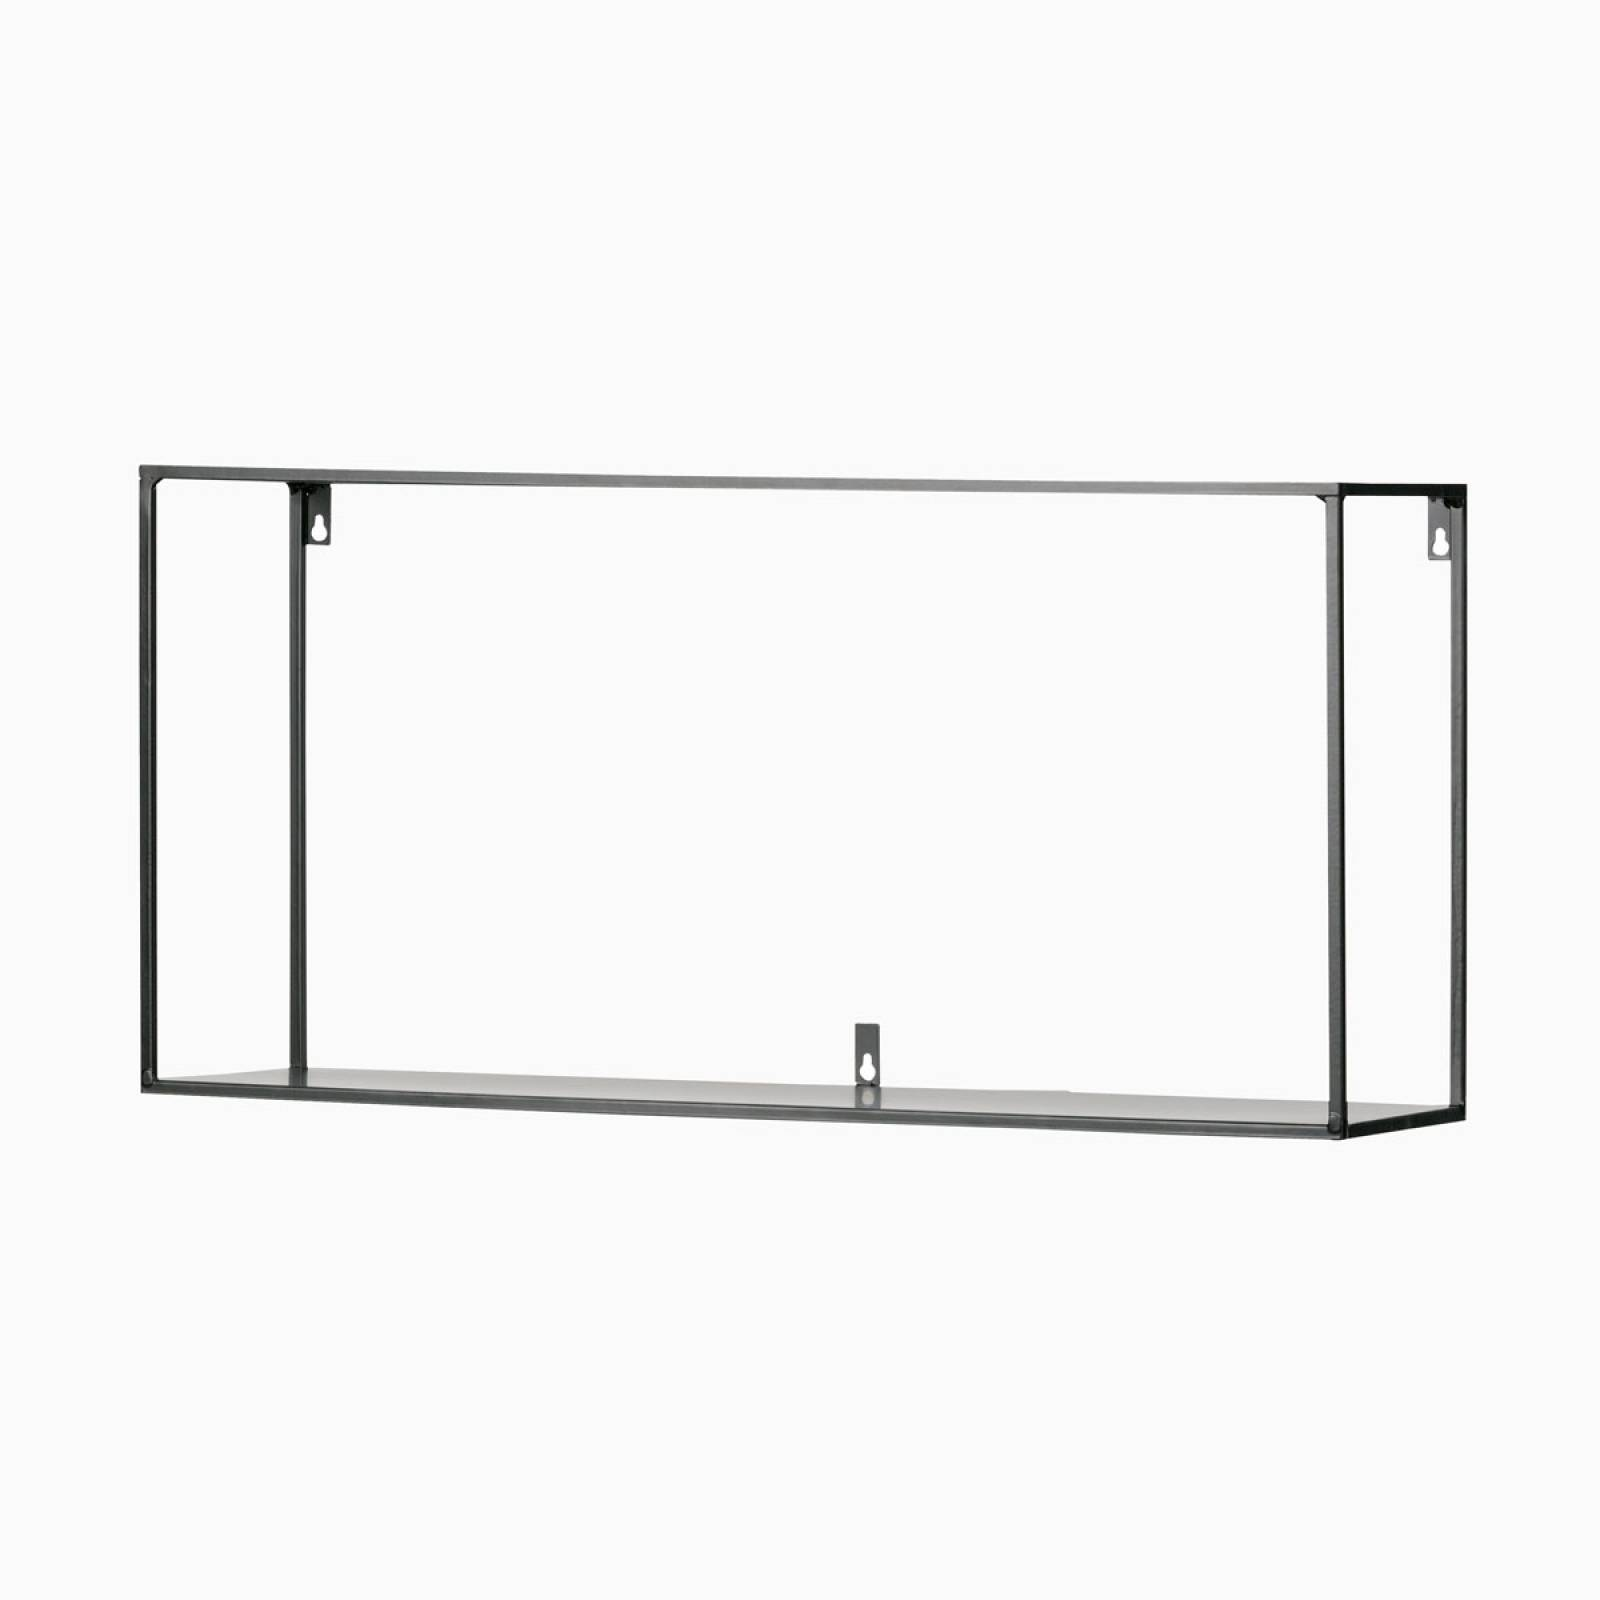 Meert Long Rectangular Wall Shelf XXL 100cm thumbnails